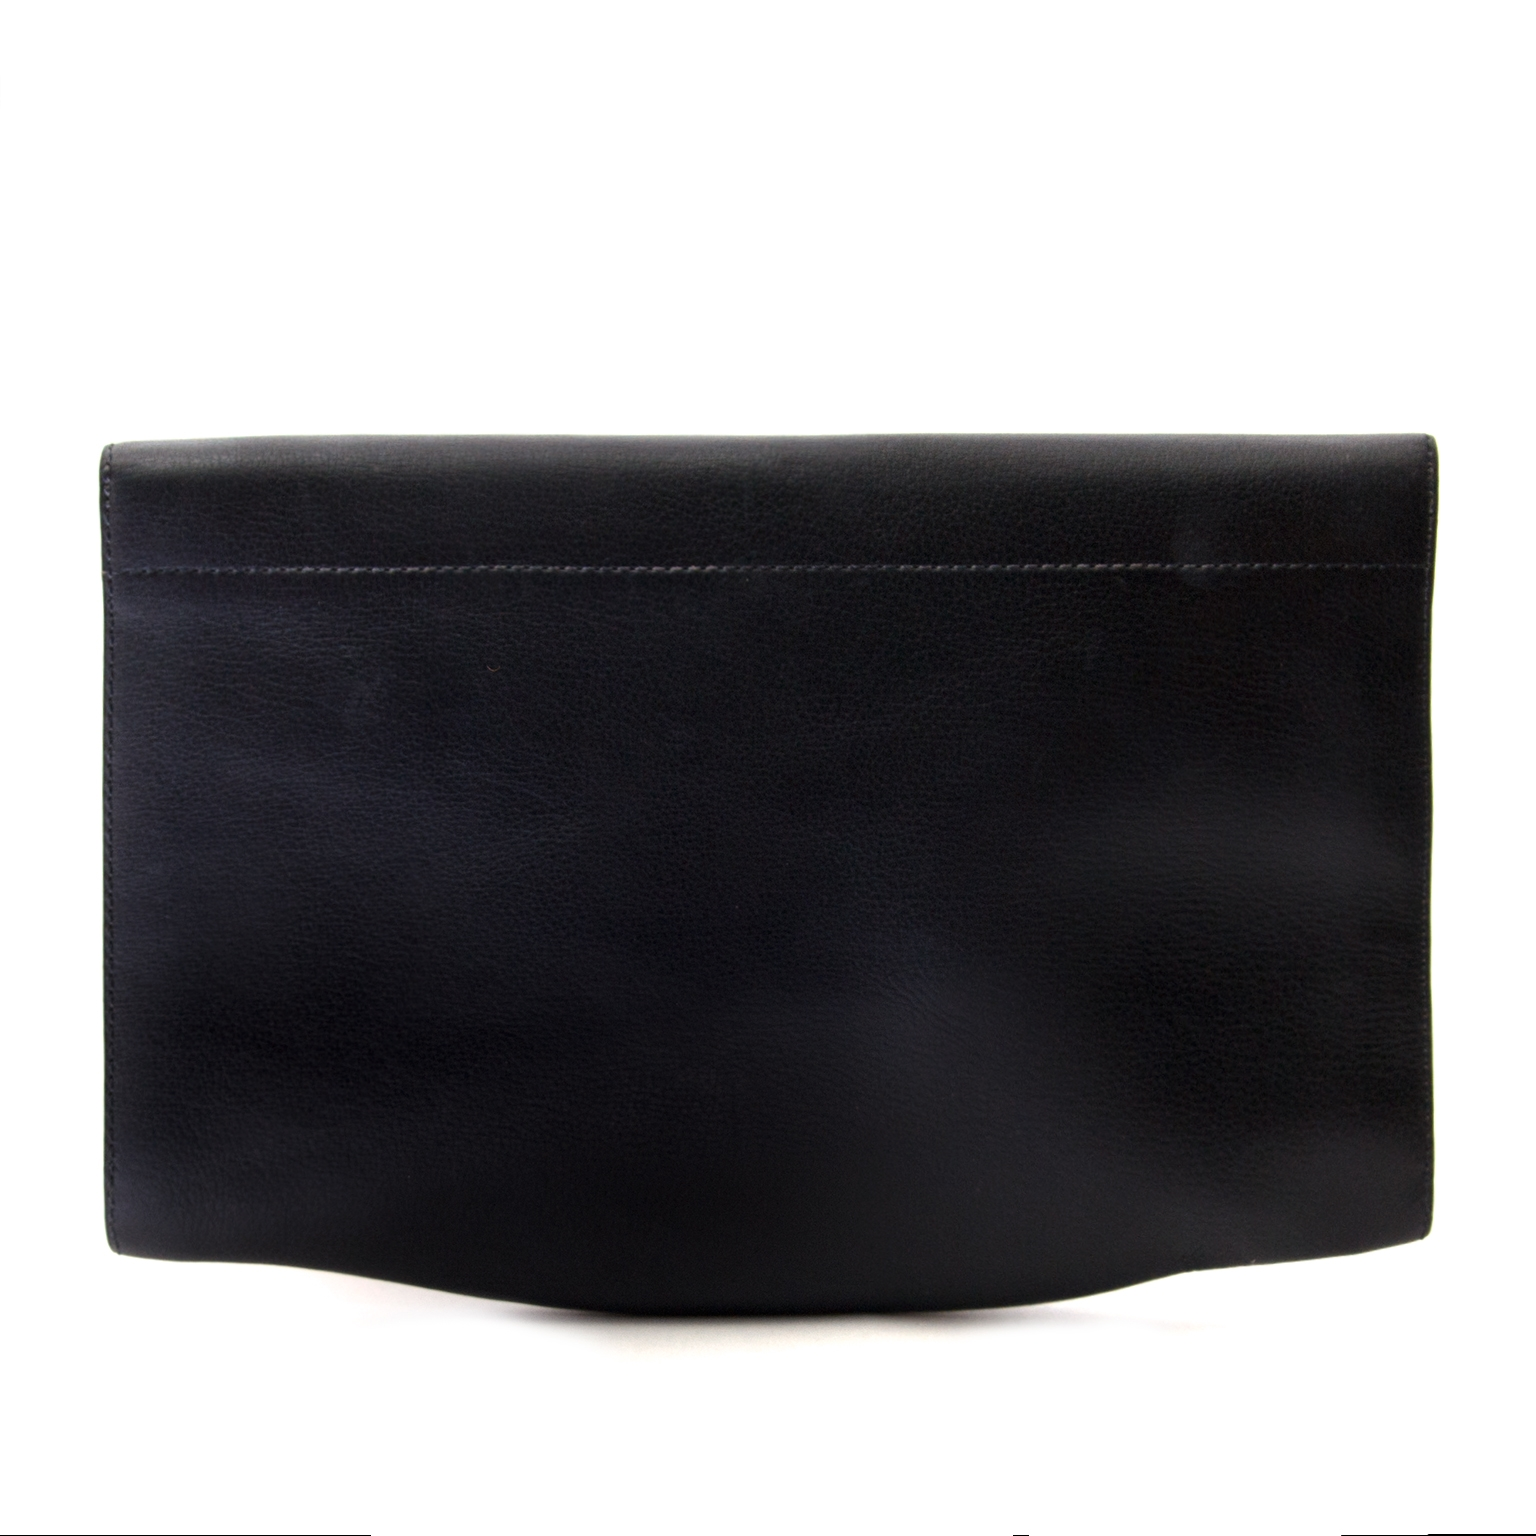 buy  Delvaux Dark Blue Leather Clutch at labellov for the best price